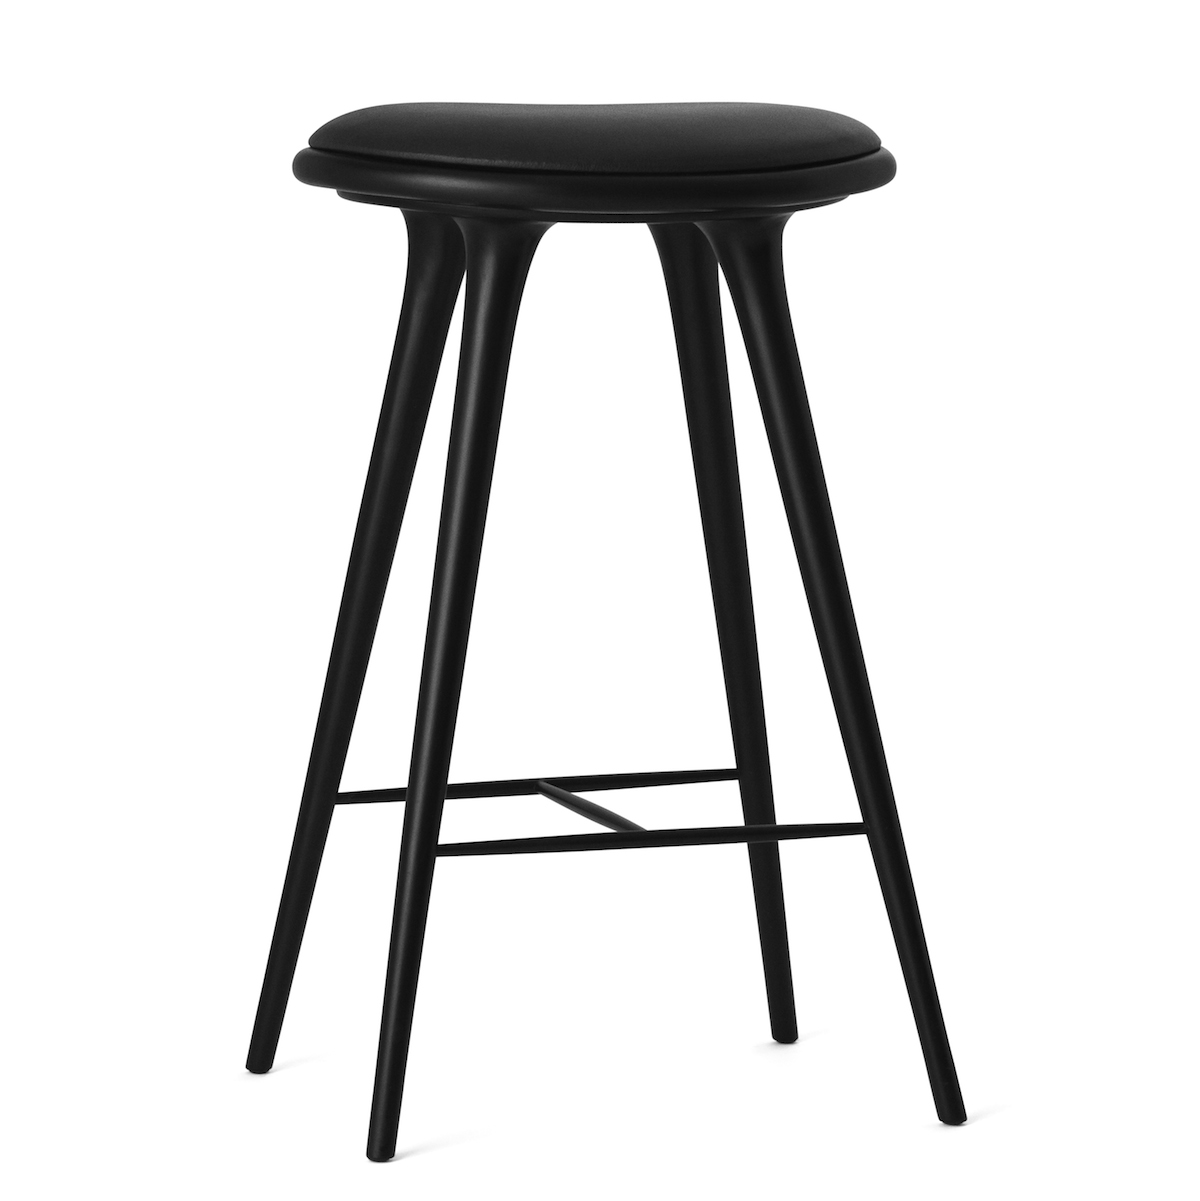 Ethical bar stool